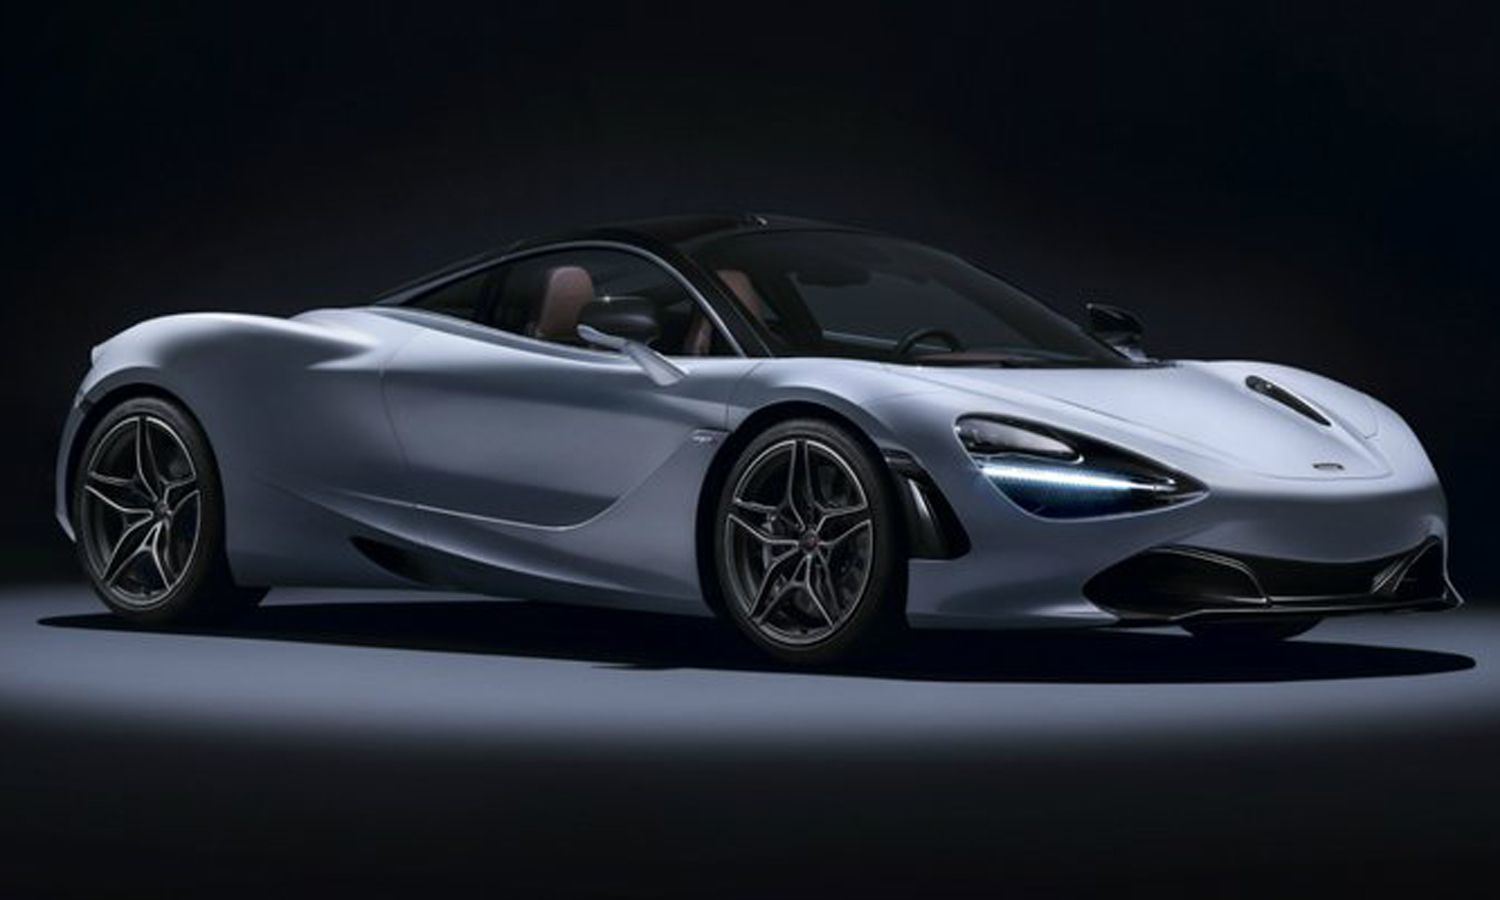 McLaren 720S: The Dawn Of A New Era